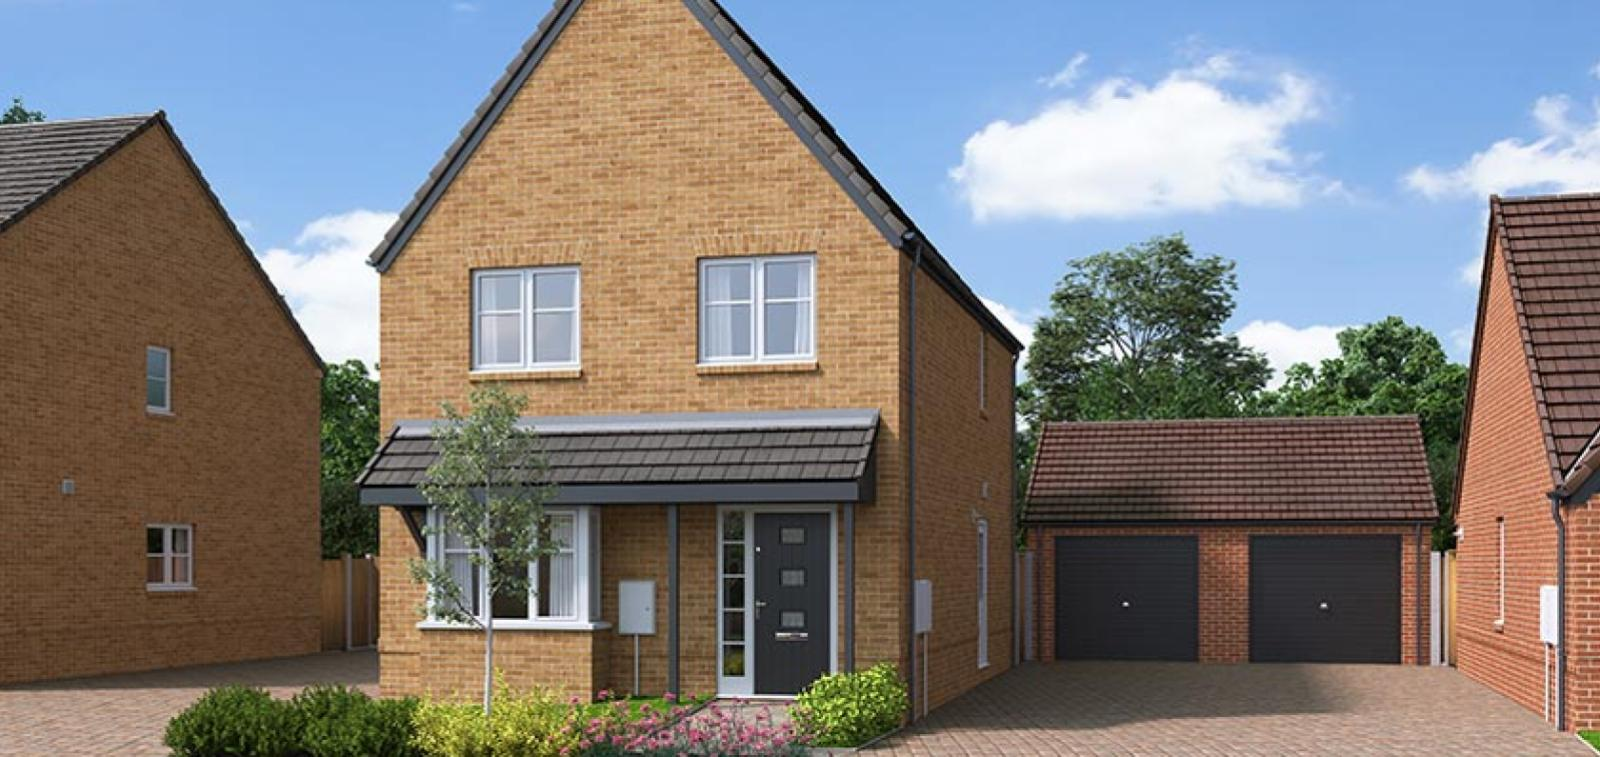 The Proposed Exterior (CGI) Of The Gala, A 3 Bed Detached House